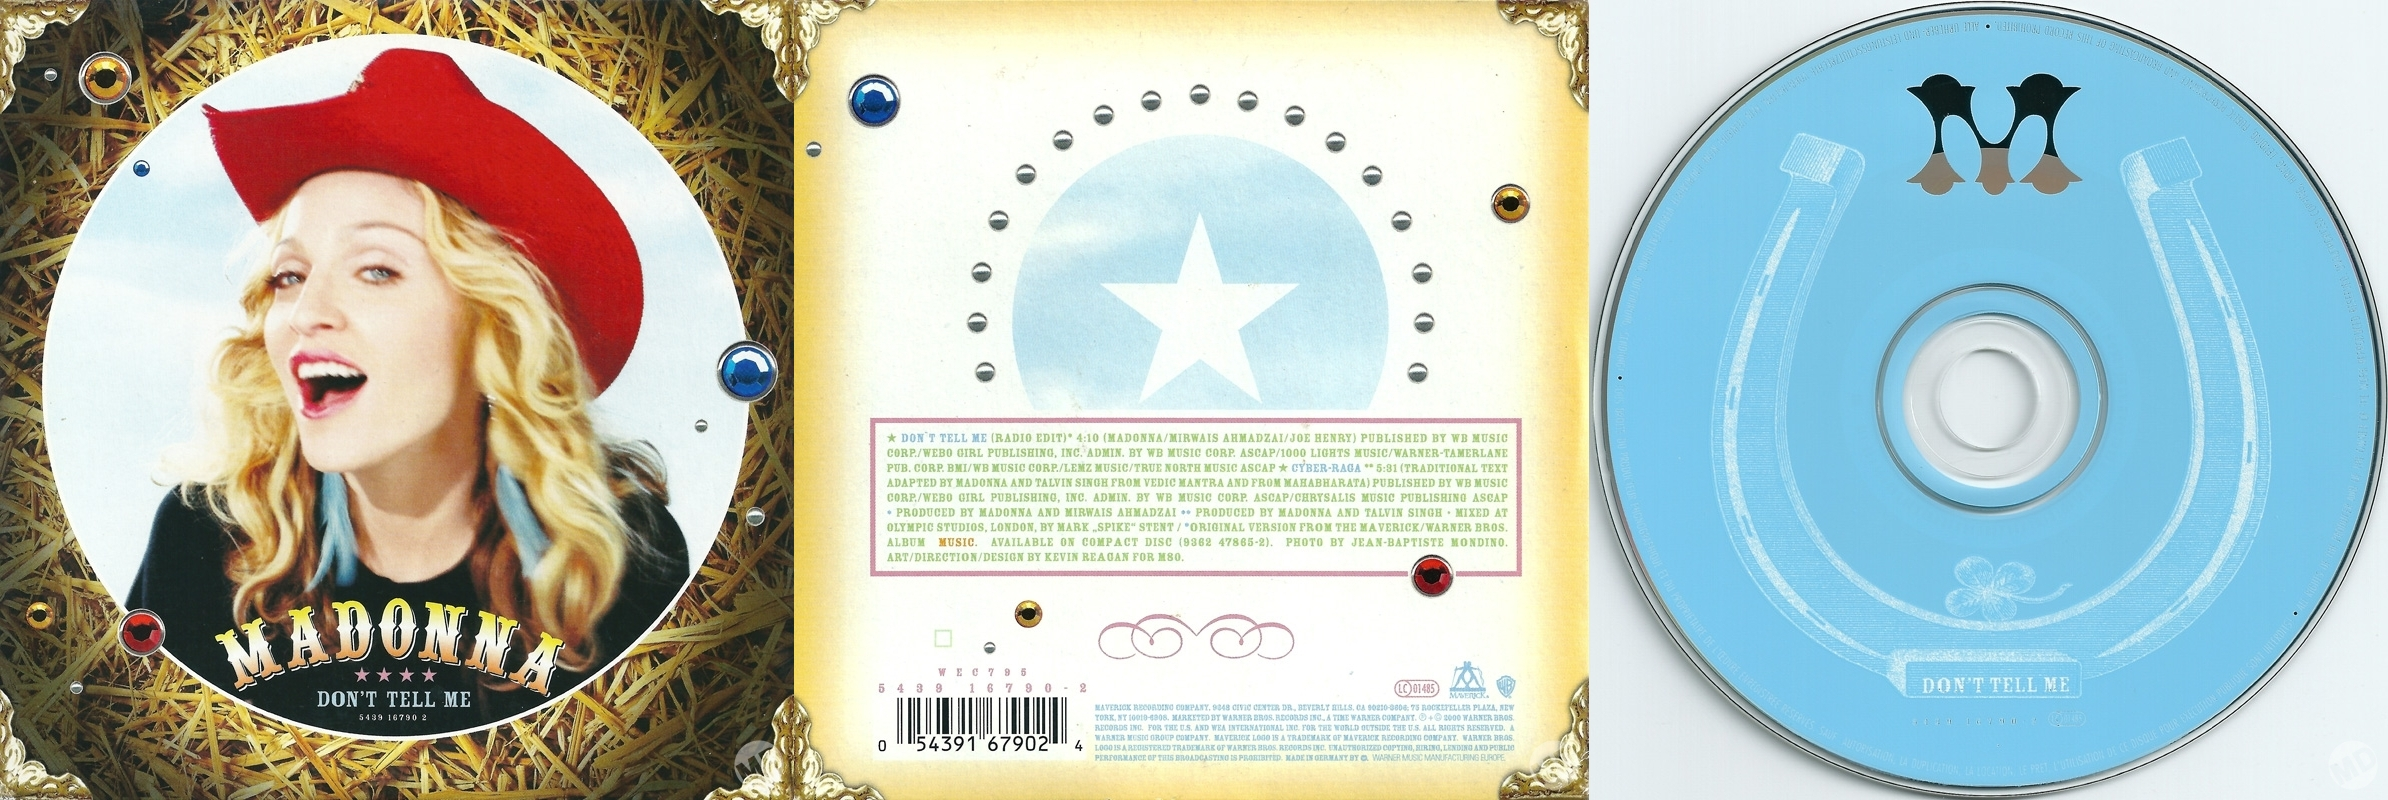 madonna dont tell me cd single alemania